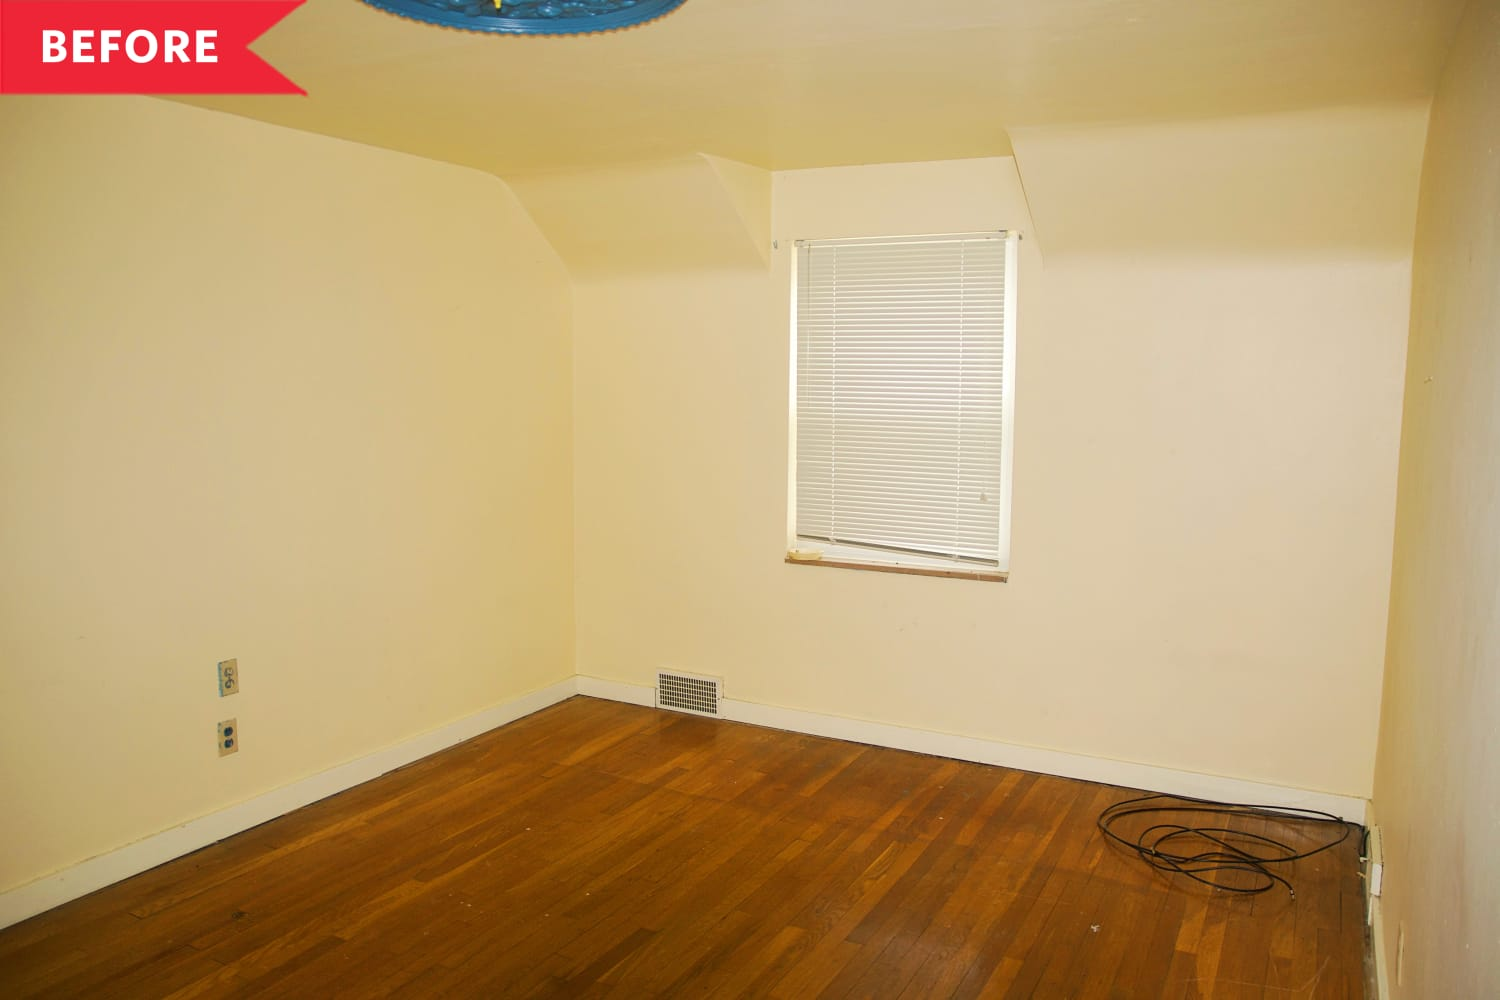 Before and After: $50 Painted Murals Add Some Sunshine to this Once Dingy White Nursery